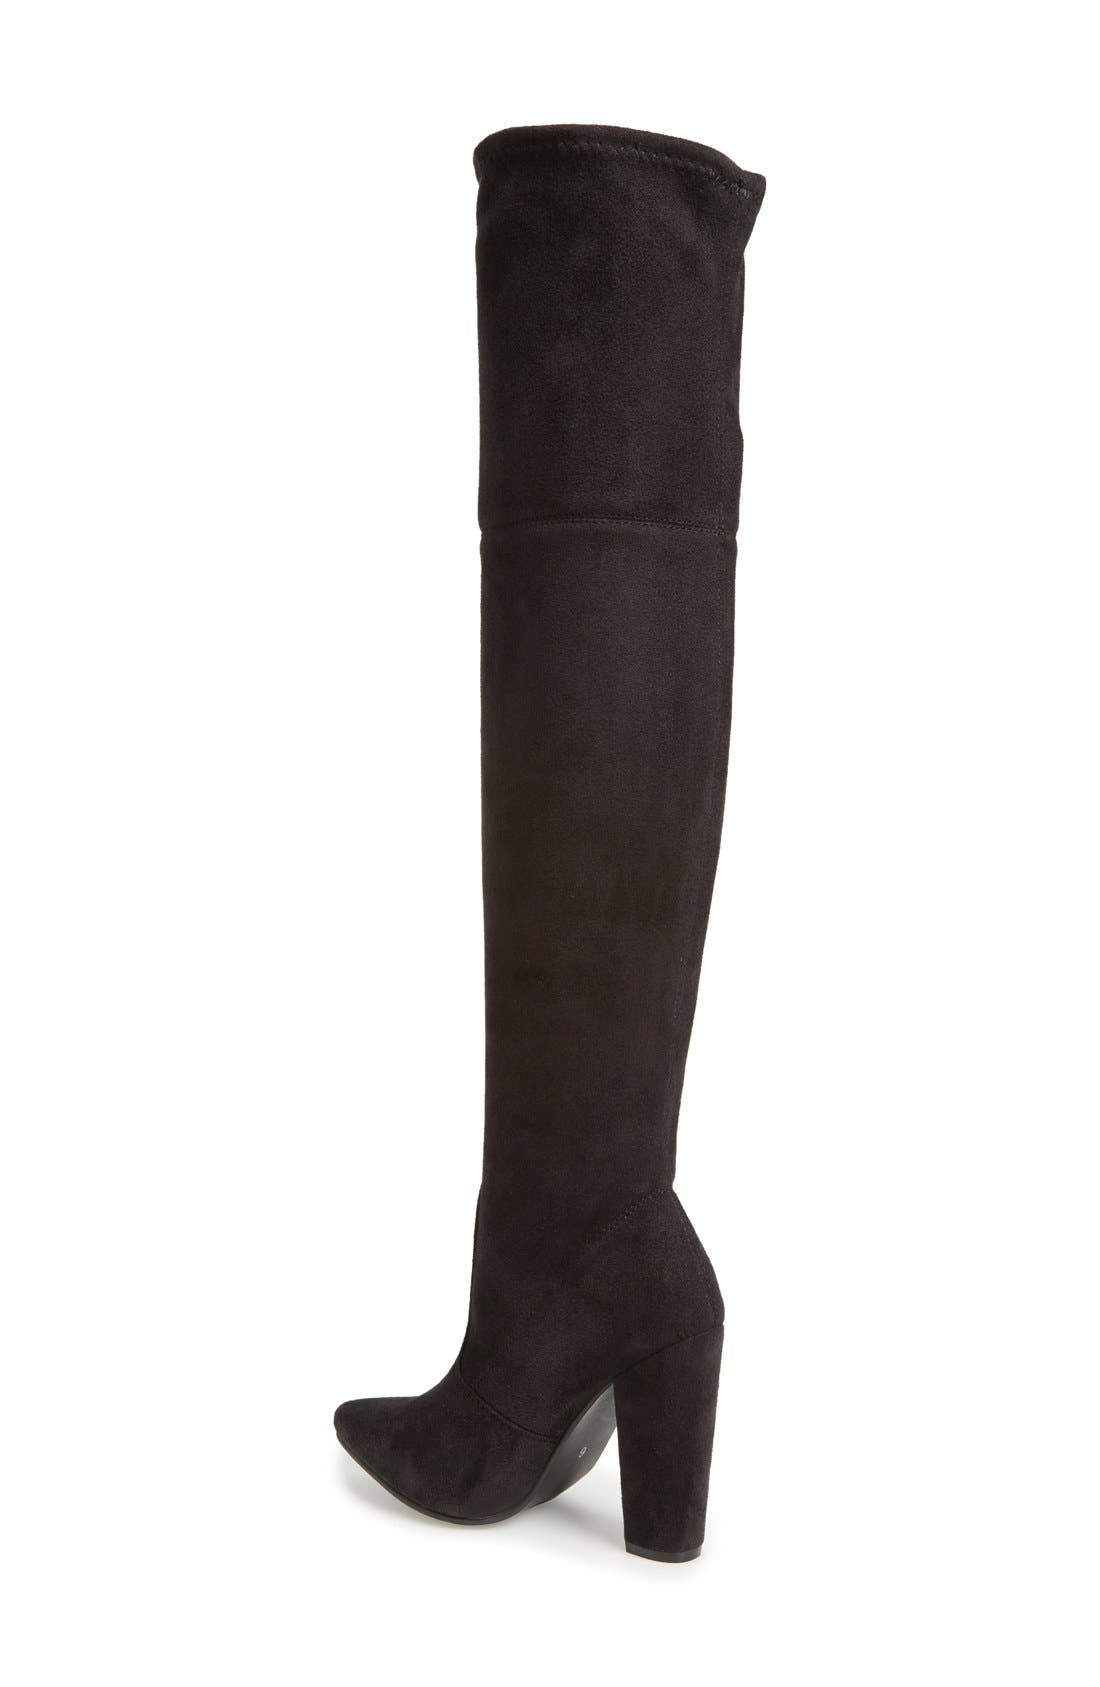 Alternate Image 2  - Steve Madden 'Rocking' Over the Knee Boot (Women)